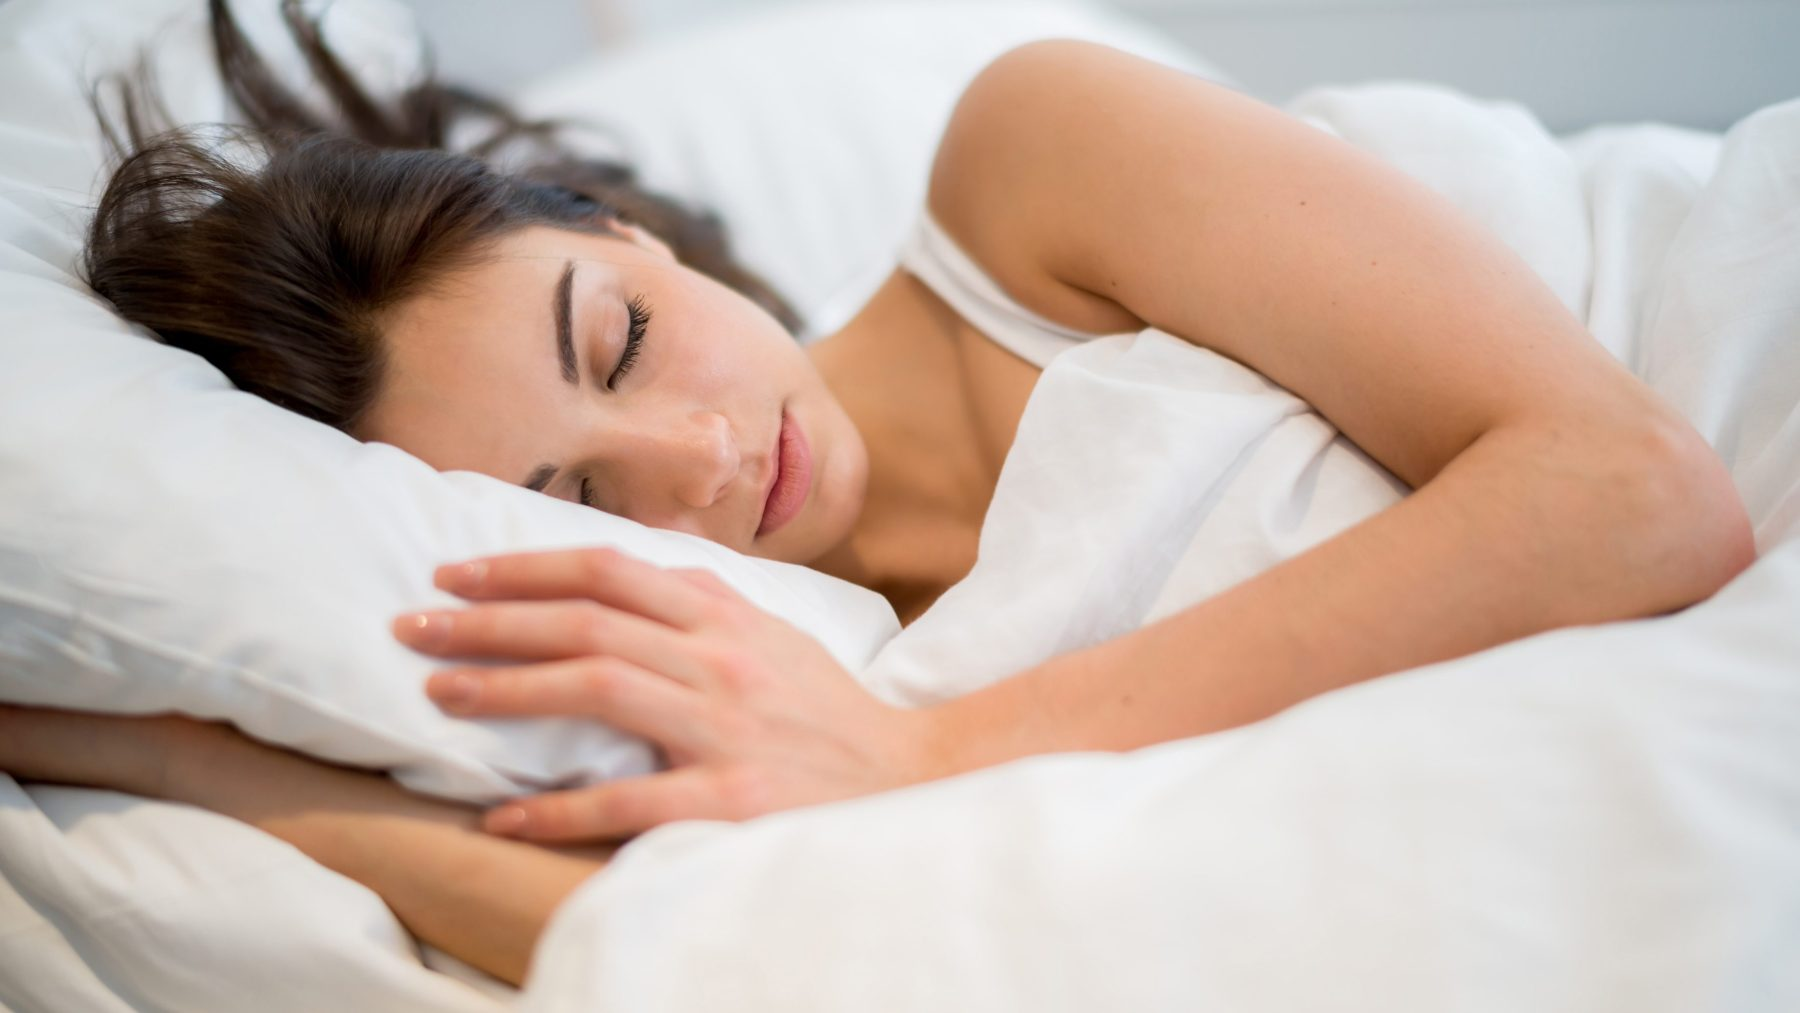 Woman sleeping at home in her bed (Getty Images)